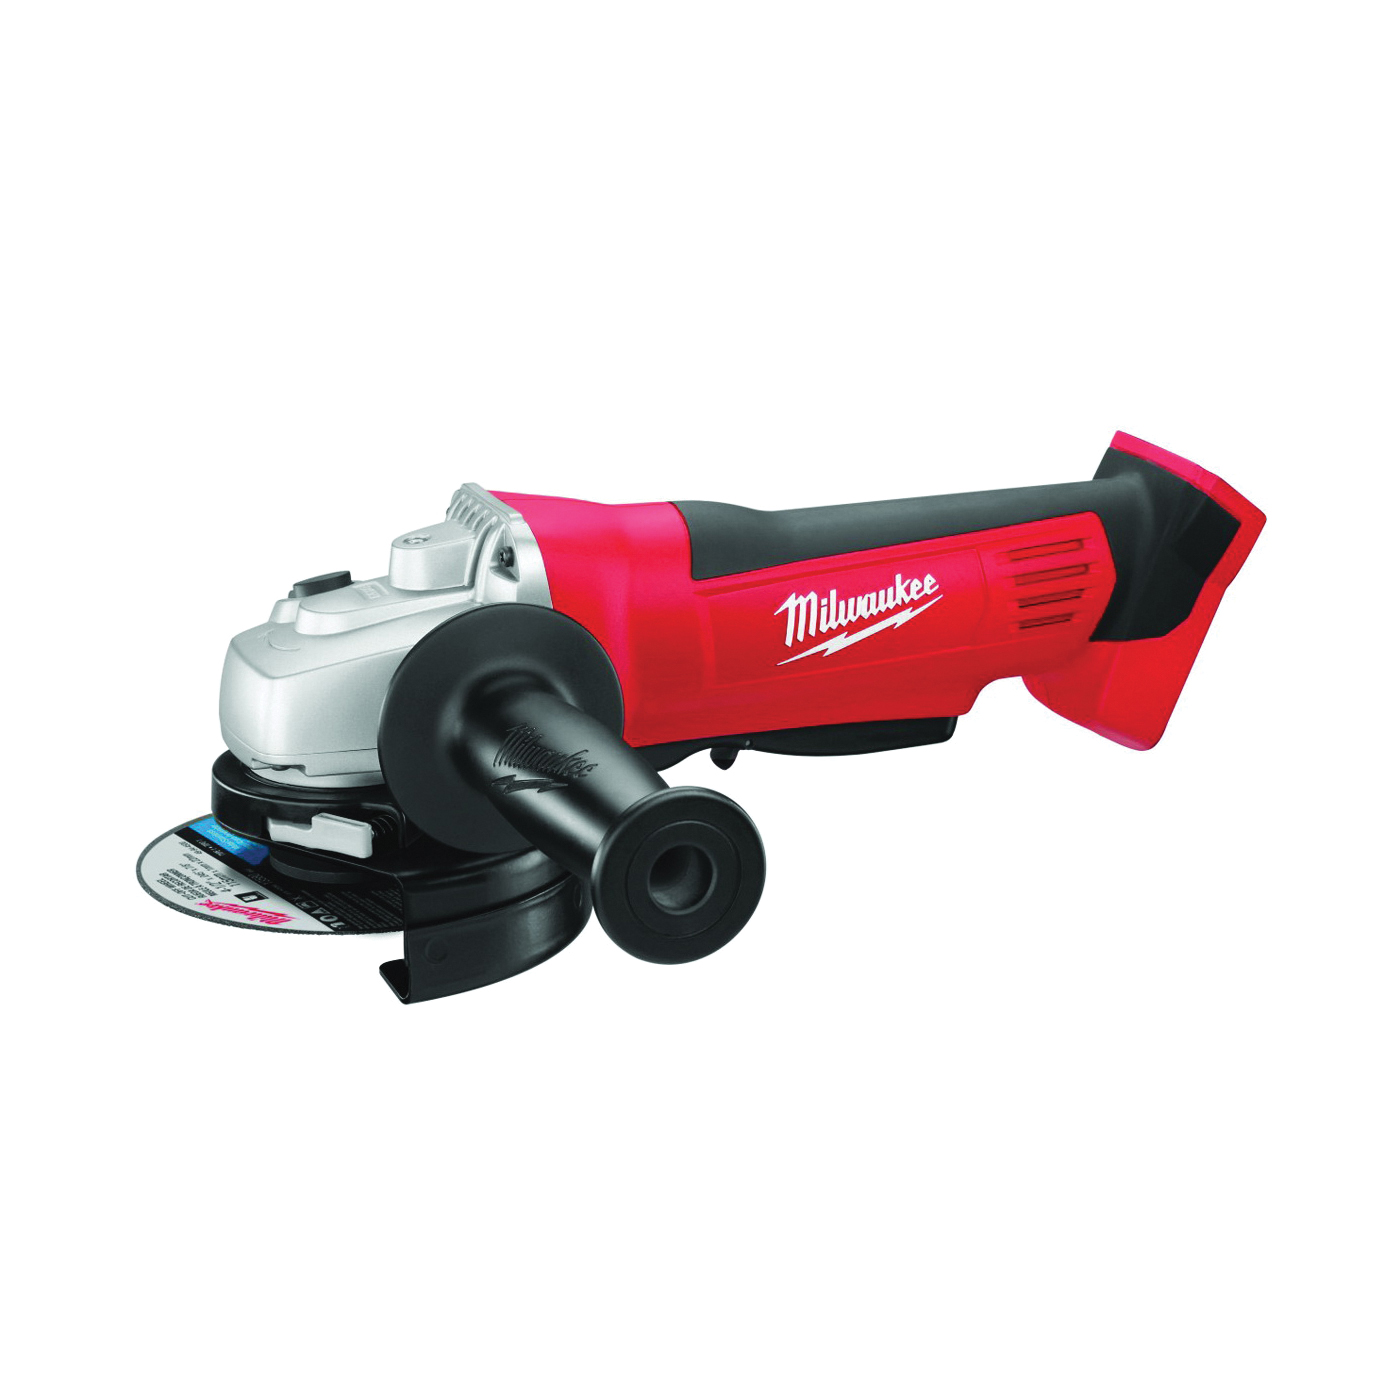 Picture of Milwaukee 2680-20 Cut-Off Grinder, Bare Tool, 18 V Battery, 1.4 Ah, 4-1/2 in Dia Wheel, 9000 rpm Speed